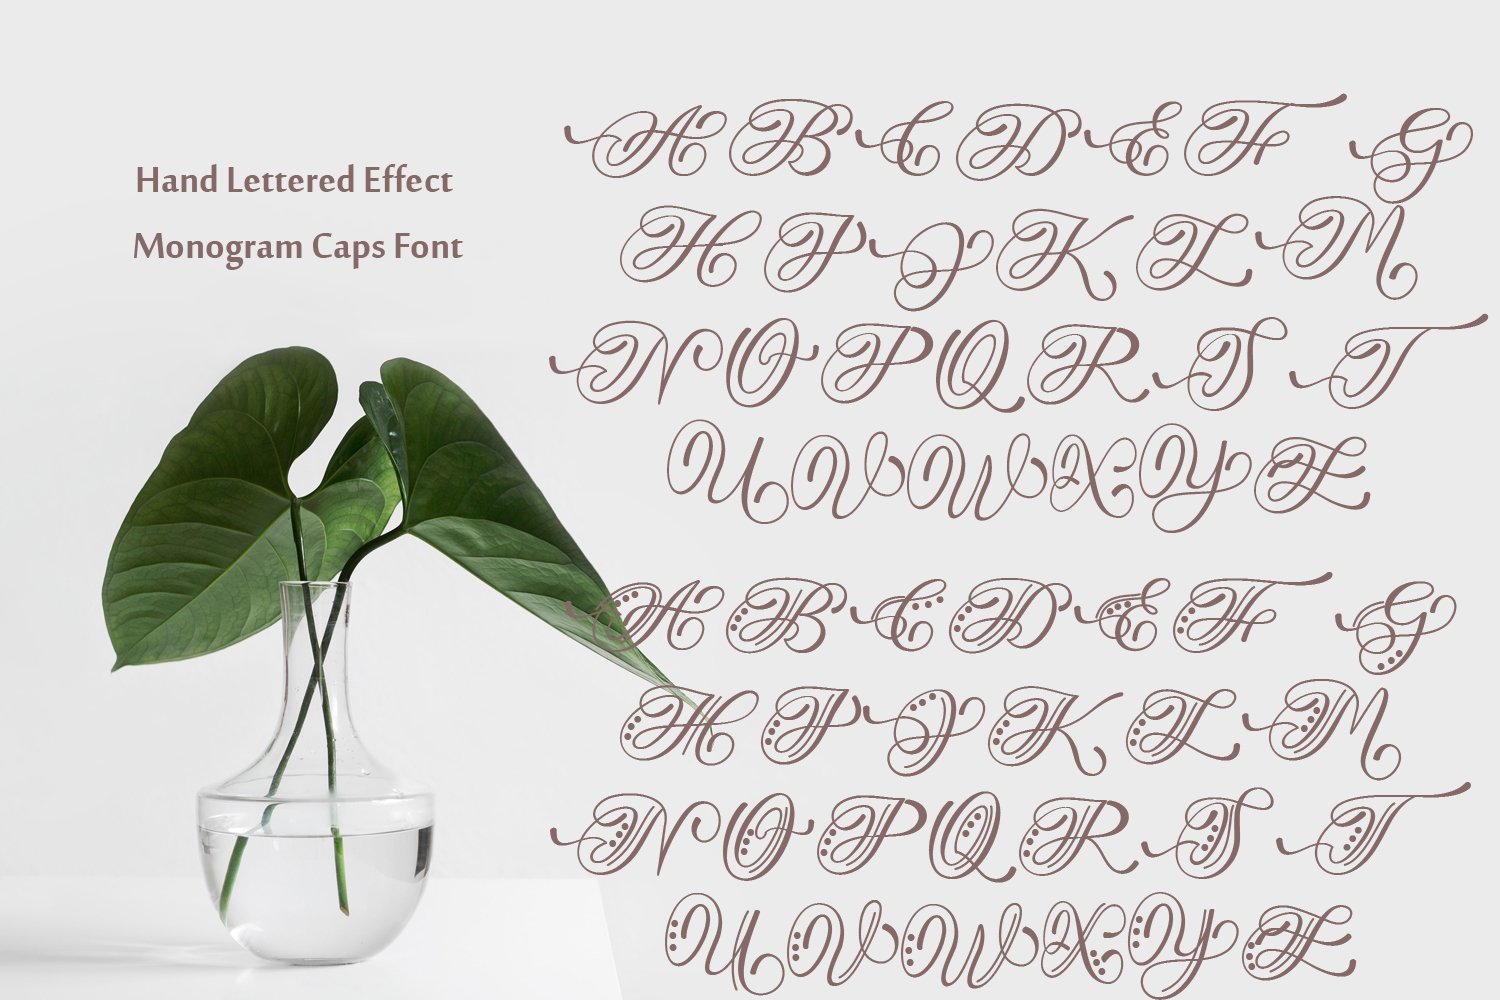 Hand Lettered Effect Monogram example image 7